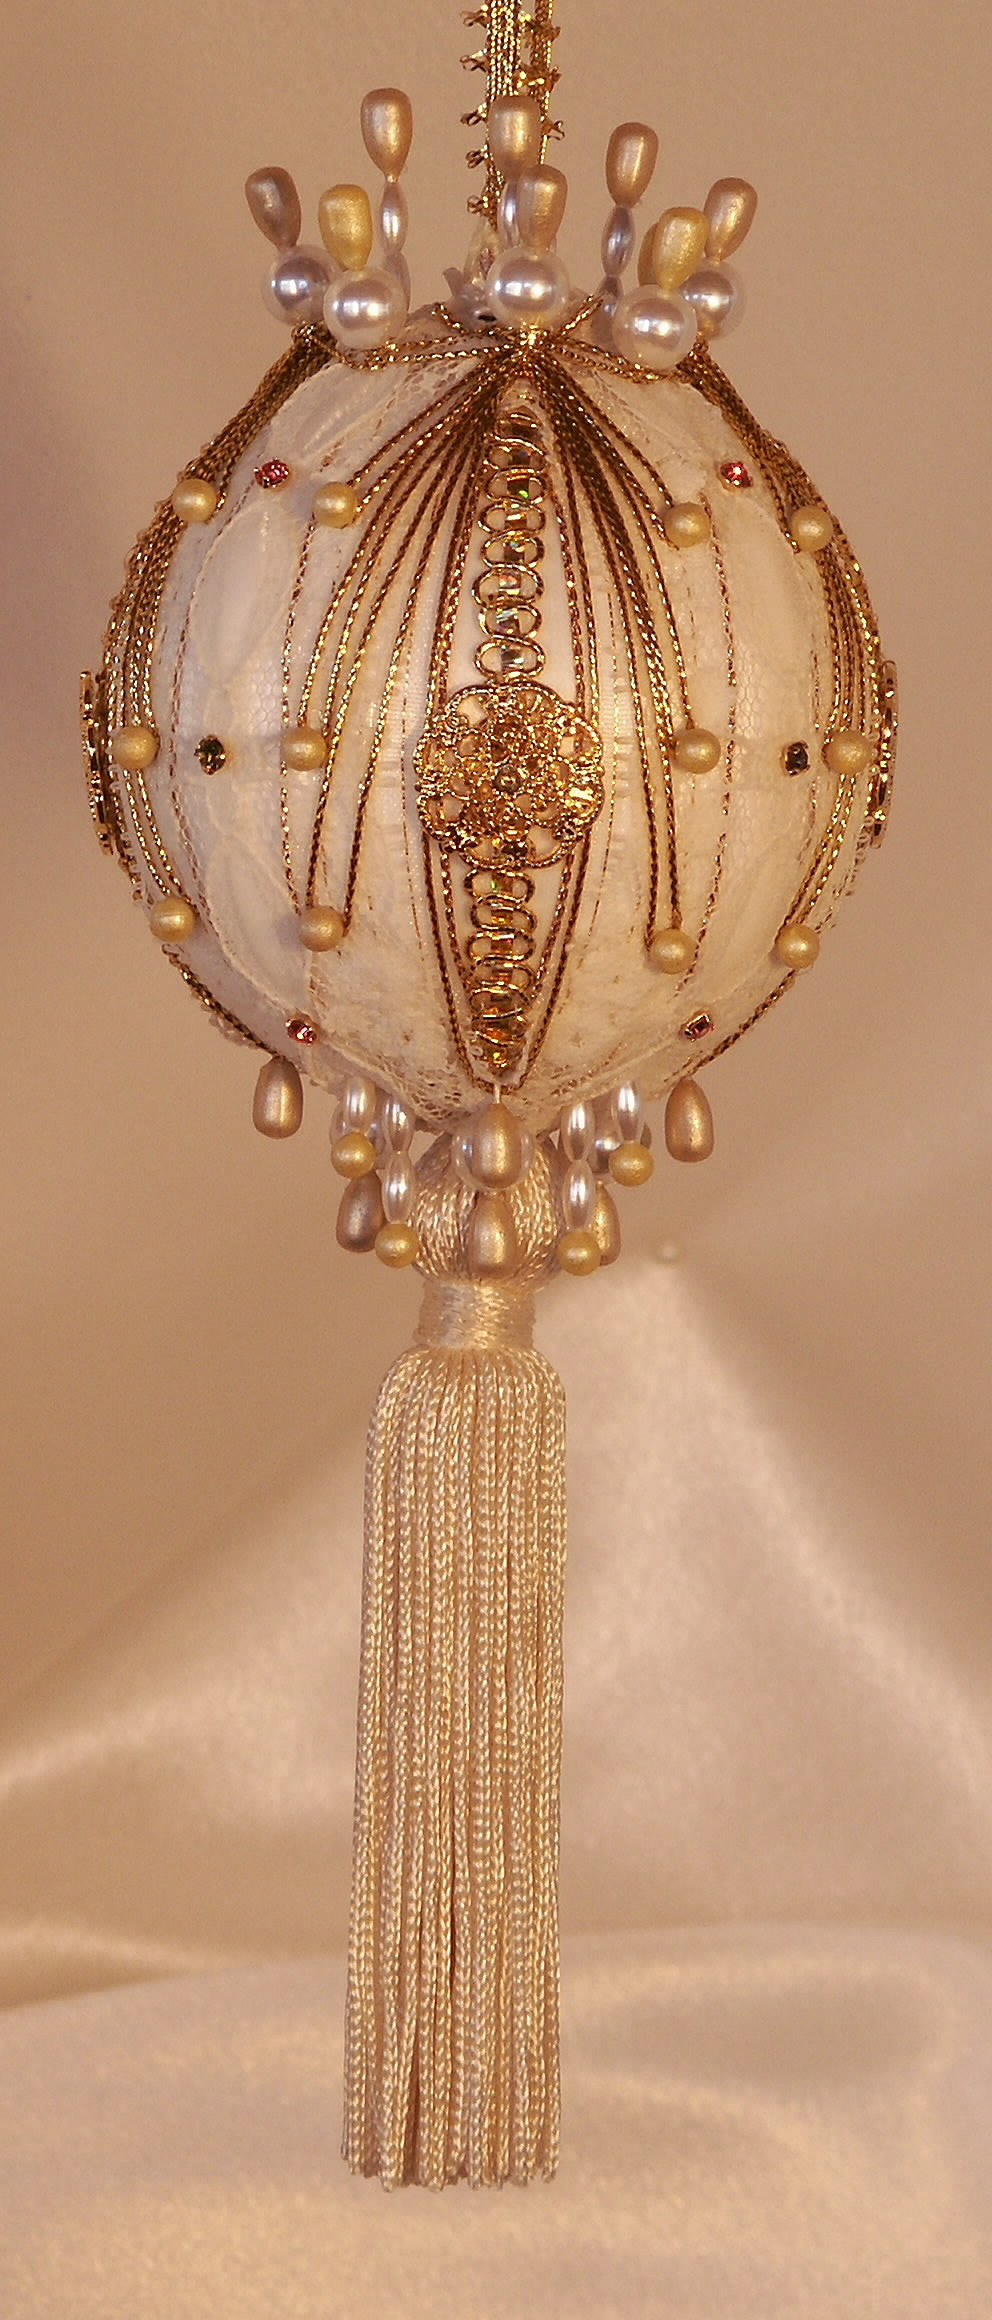 Victorian style christmas tree ornaments - Christmas Ornaments Adella Lee An Ivory Tassel Velvet And Swarovski Crystals On This Collectible Giftable Heirloom Ornament